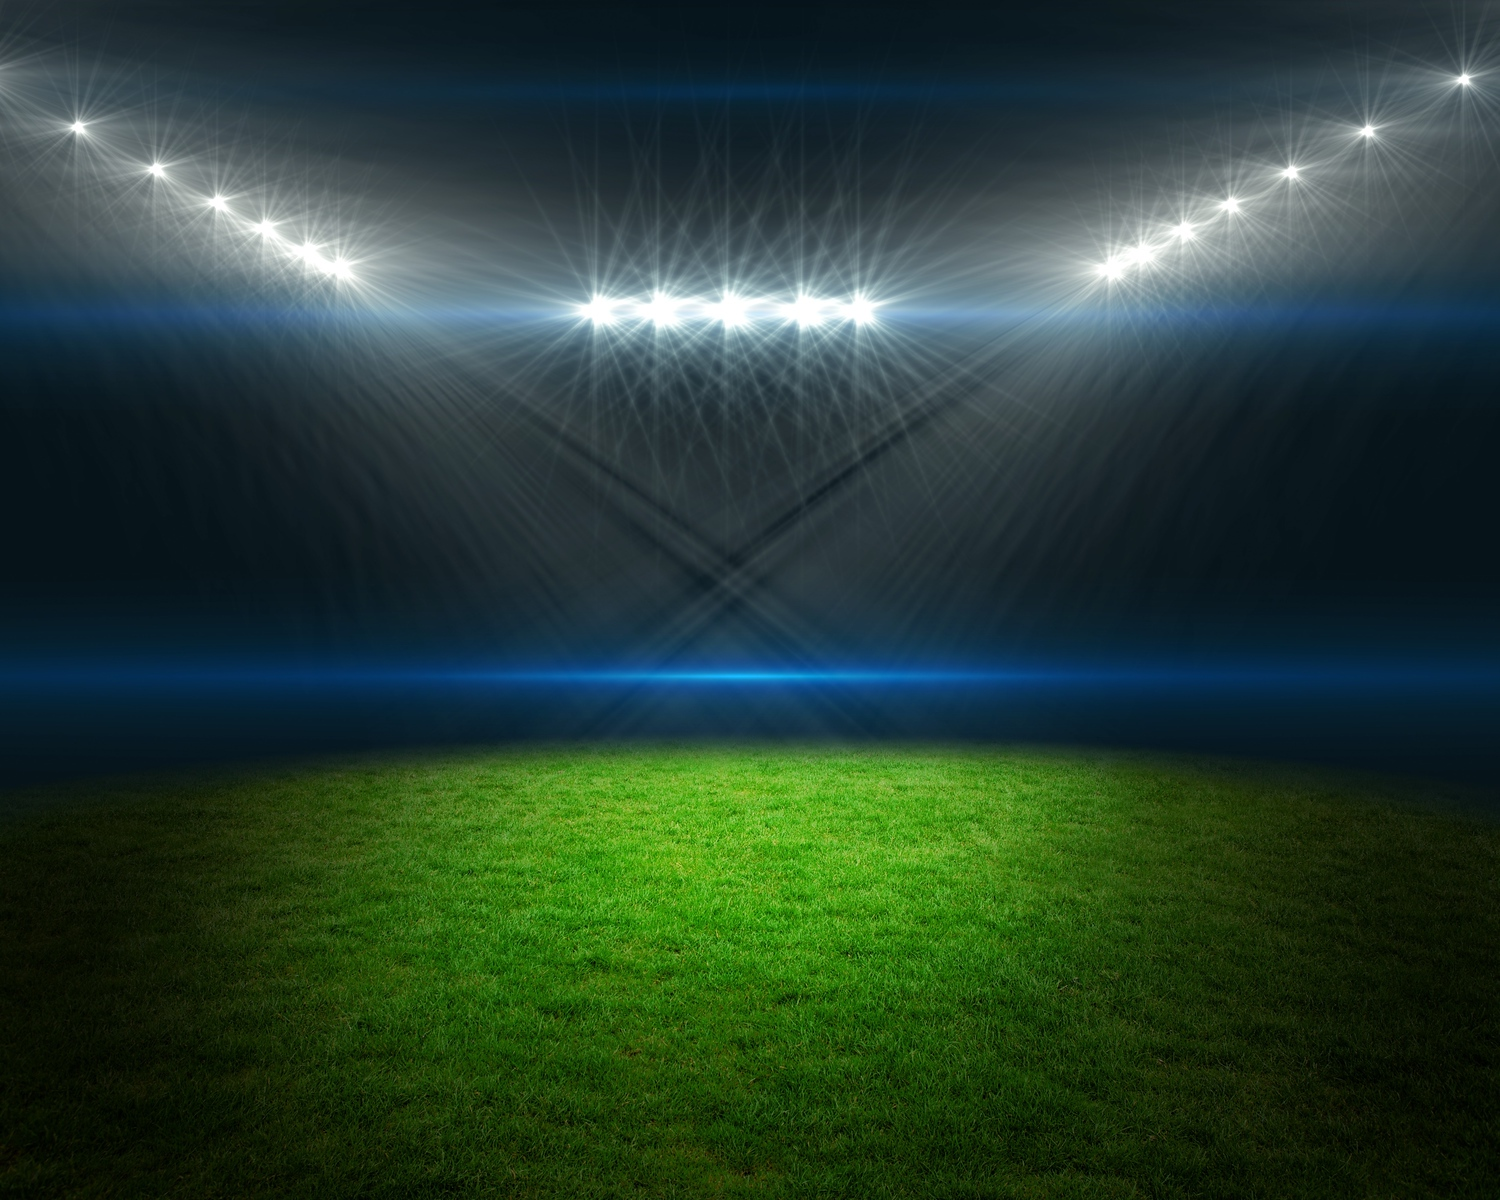 Football pitch with bright lights